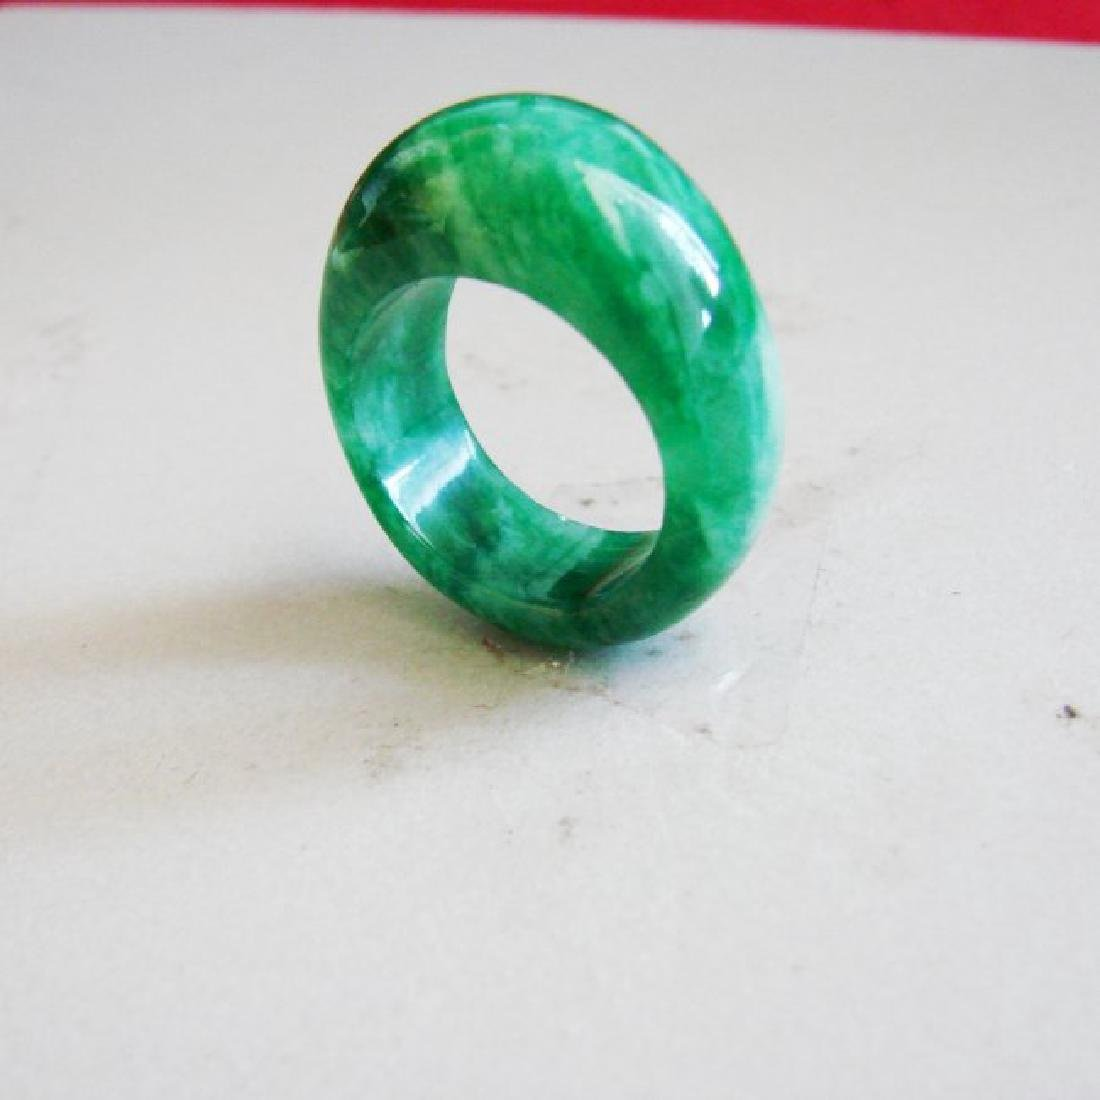 Natural Chinese Jadeit Jade Dome Ring Grade A Size: 9.5 - 3